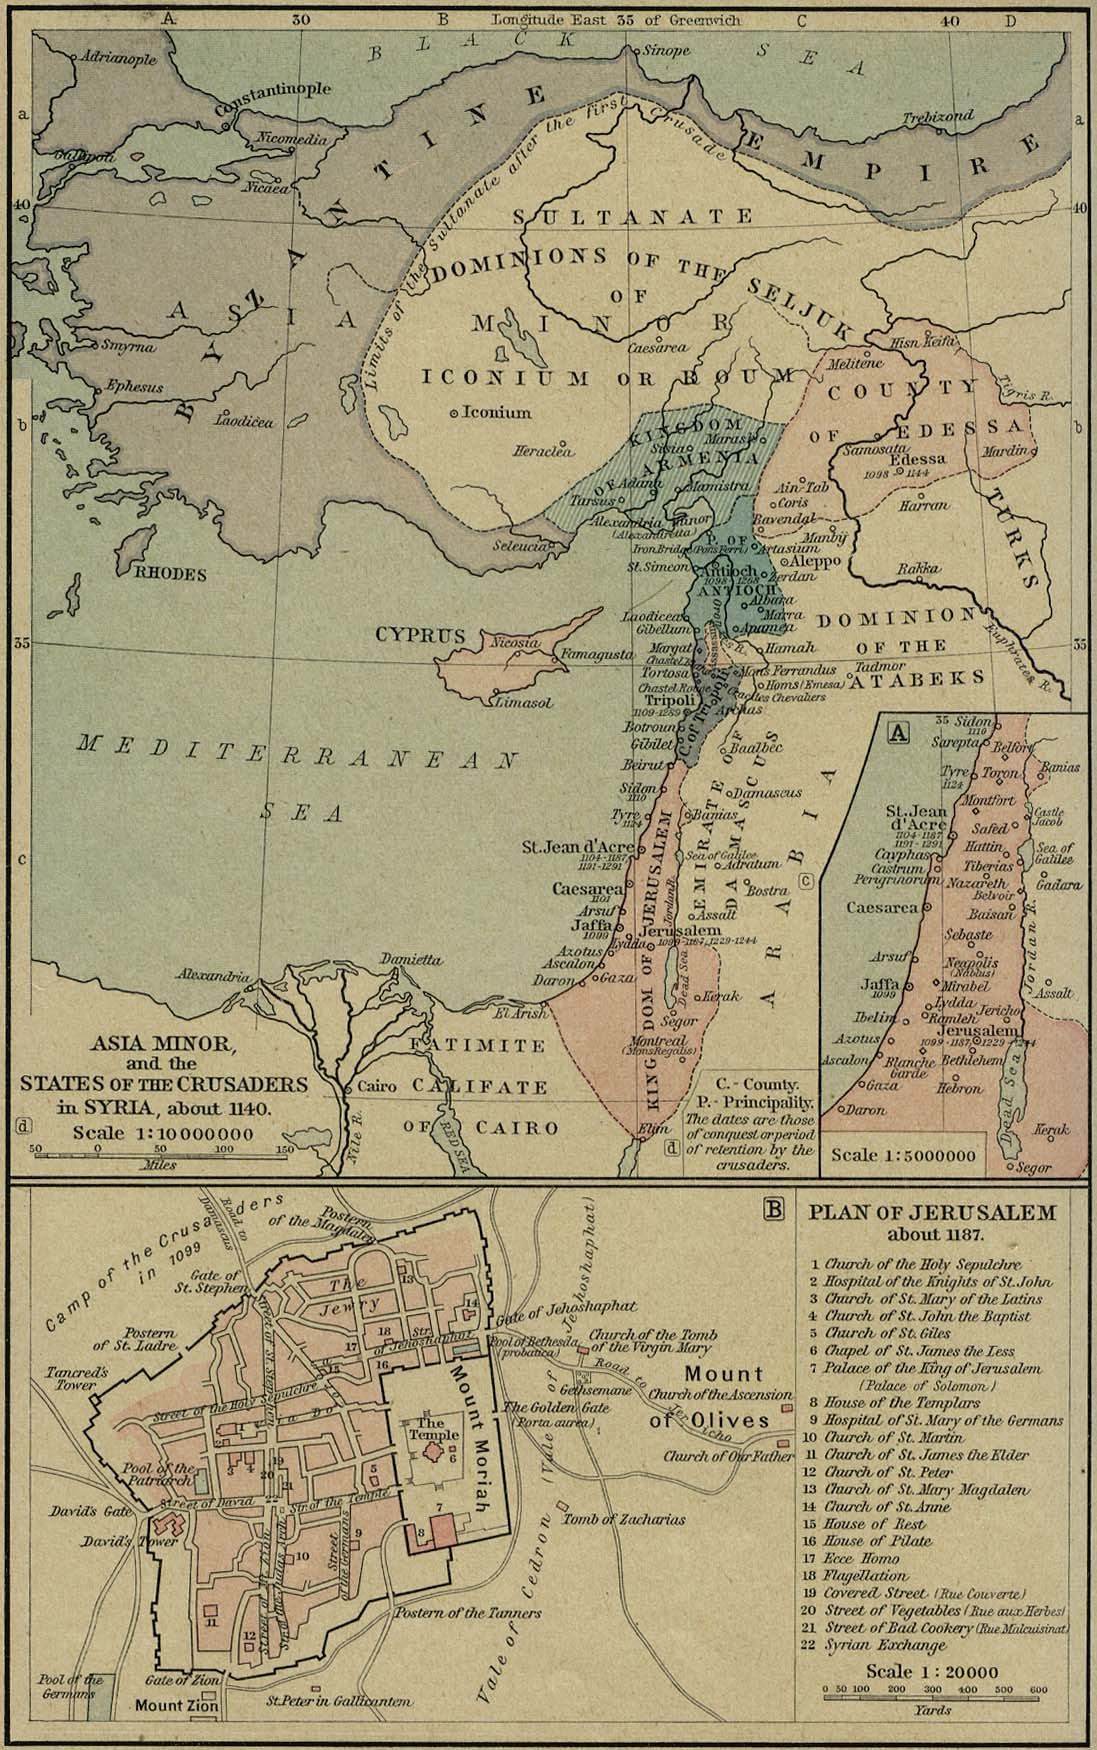 Asia Minor and the states of the Crusaders in Syria, about 1140